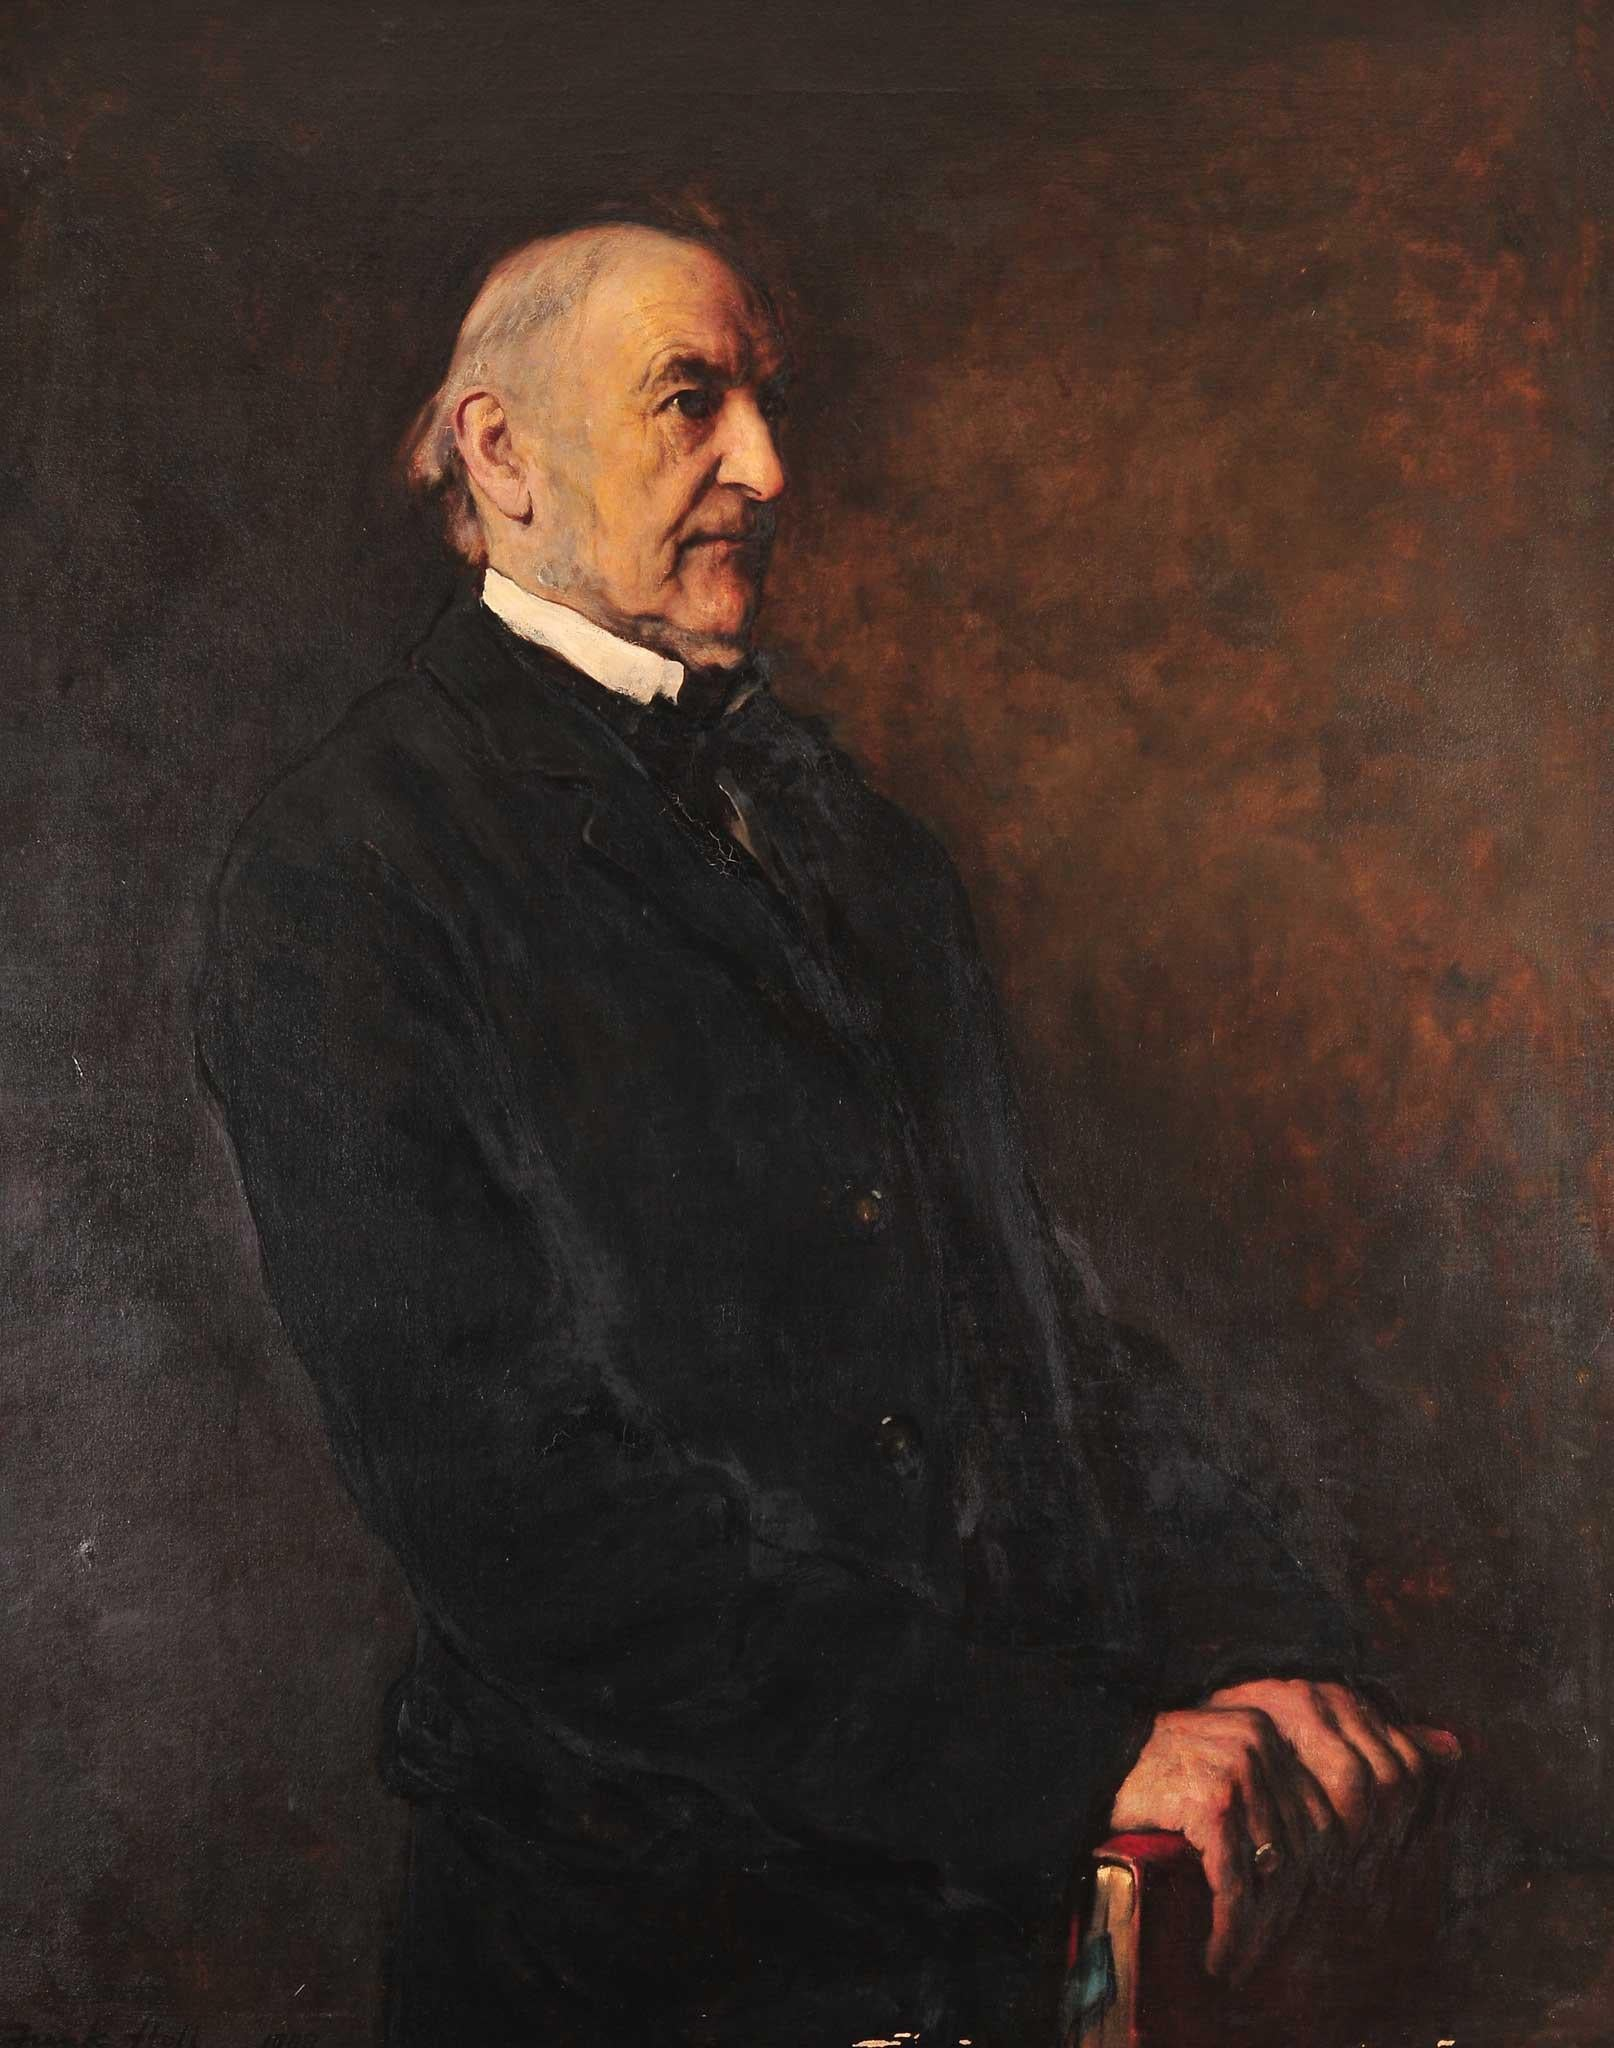 Great works william ewart gladstone 1887 8 by frank holl the great works william ewart gladstone 1887 8 by frank holl the independent sciox Choice Image